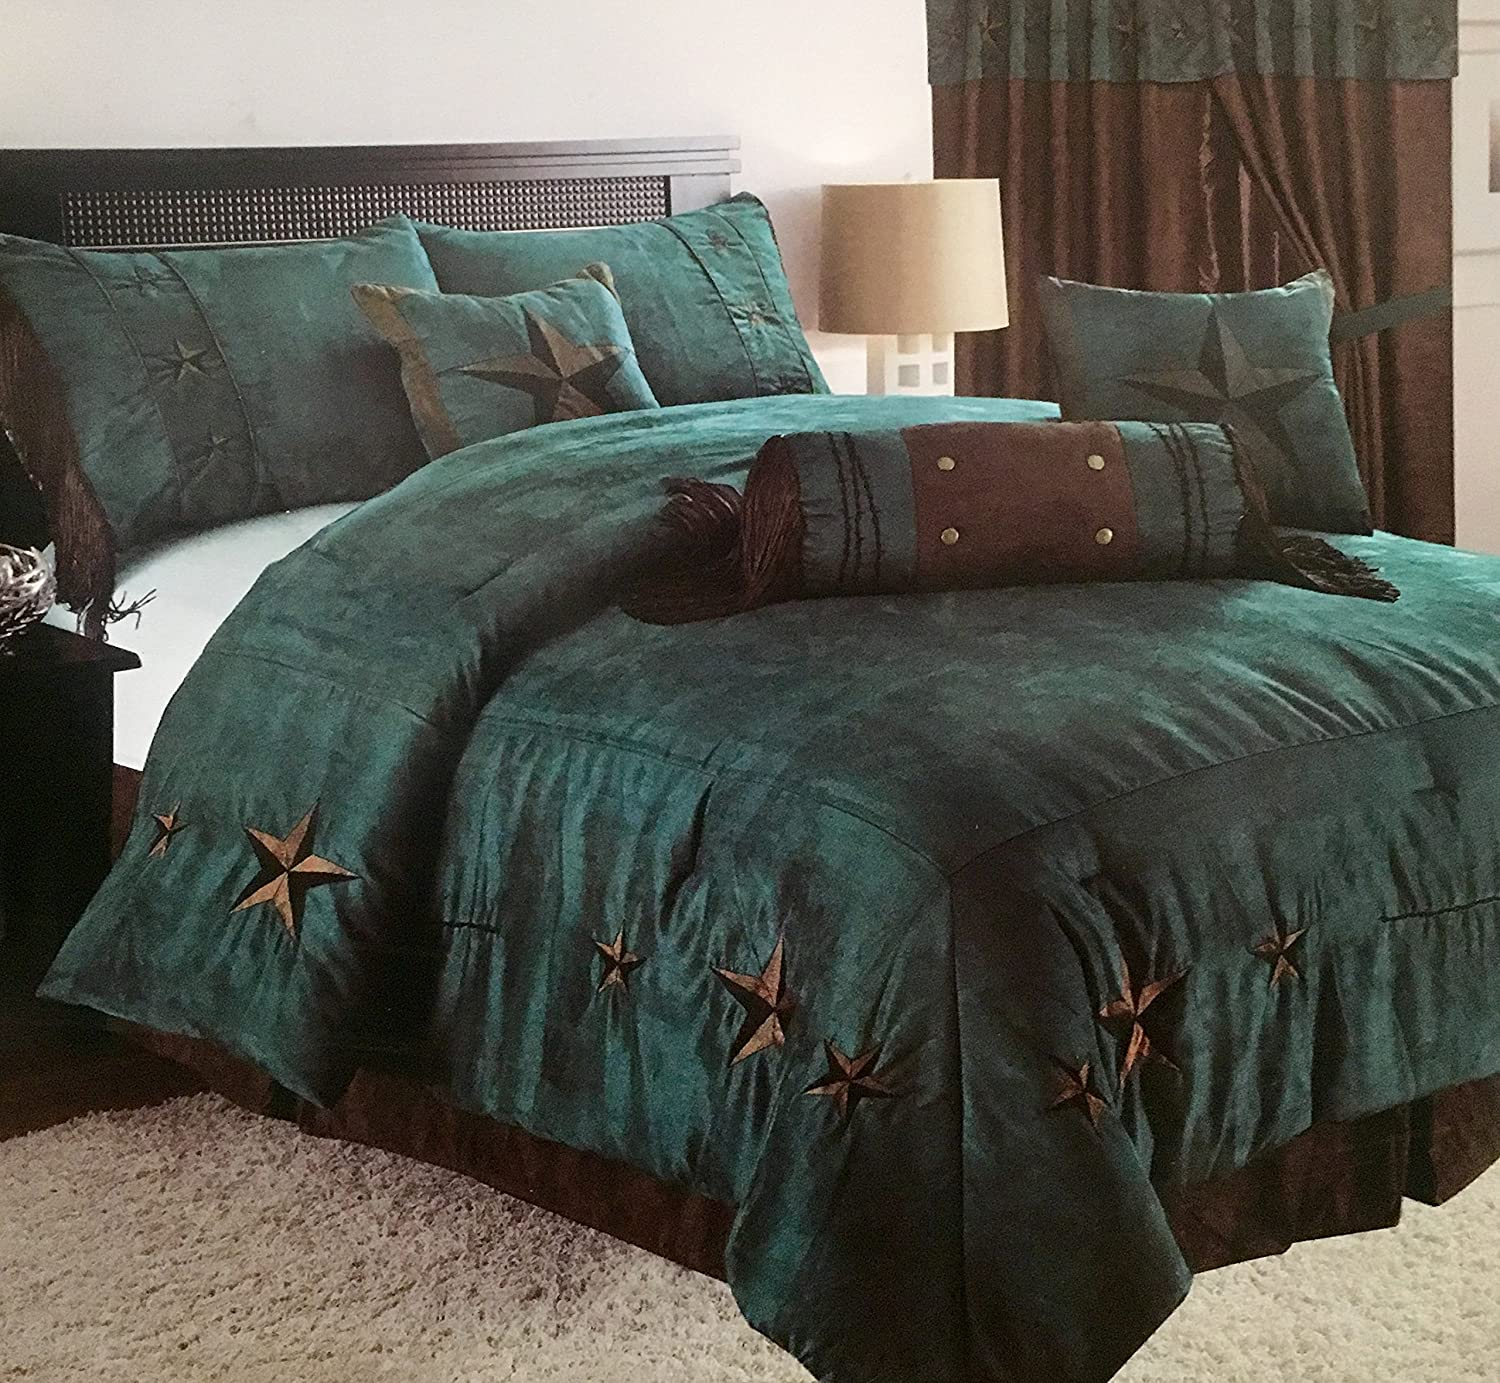 Linen Mart Rustic Turquoise Embroidery Star Western Luxury Comforter - 7 Pc Set (Oversized Queen)